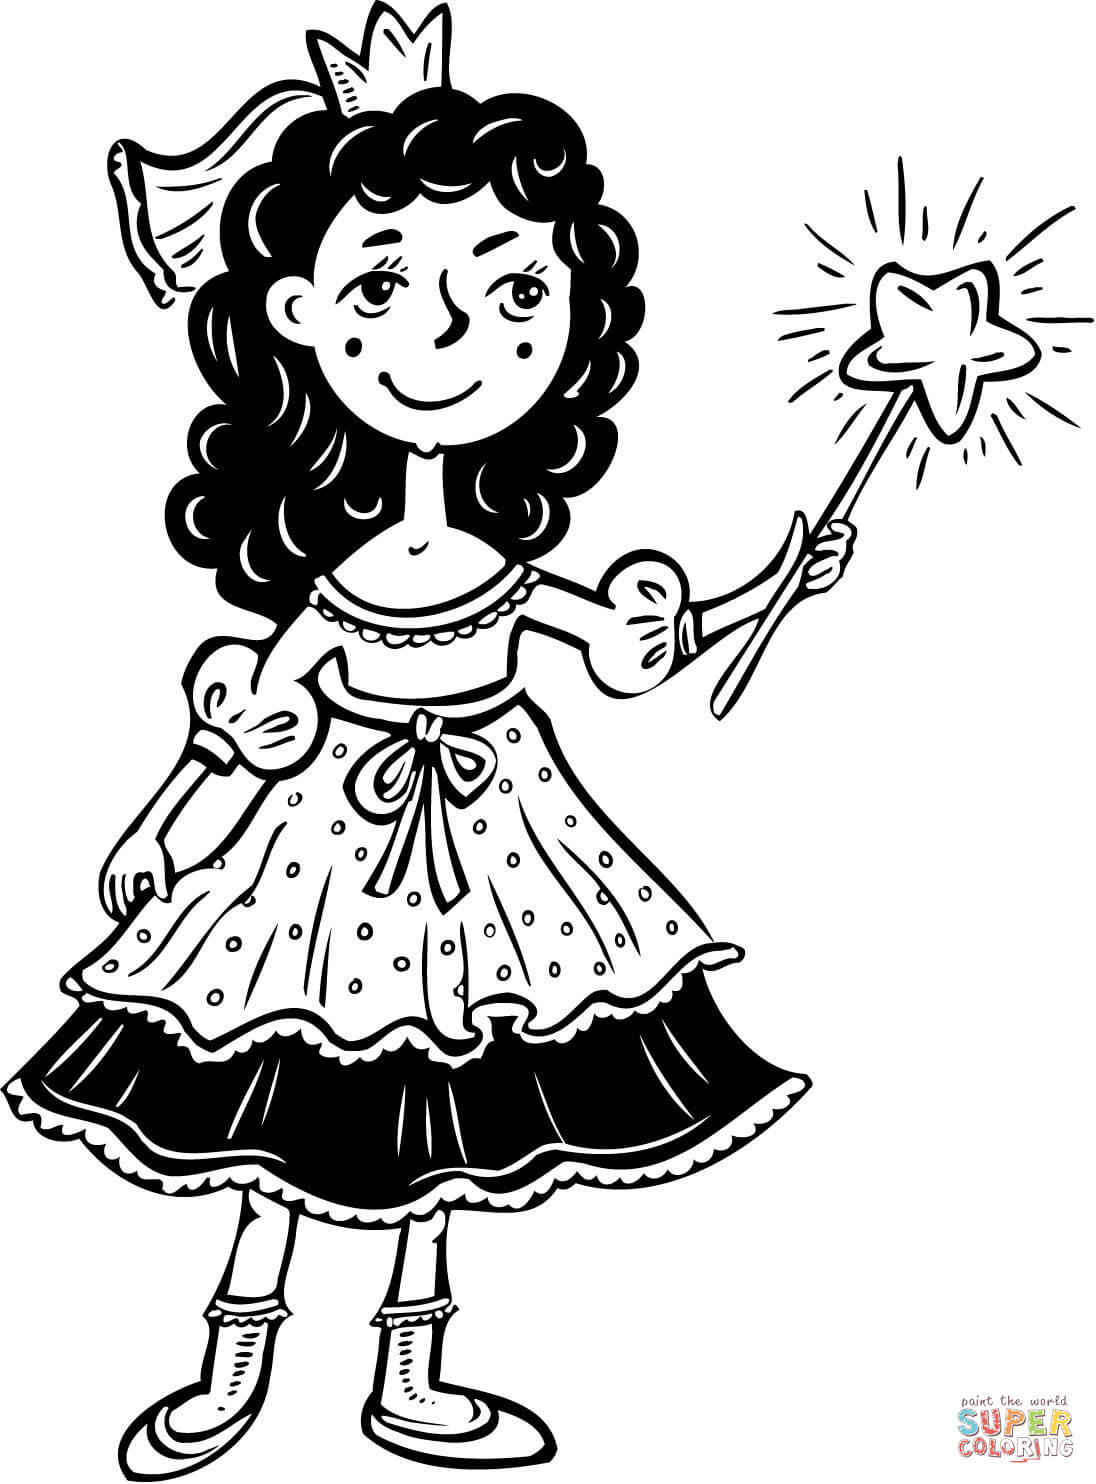 Princess Girl With Wand Coloring Page